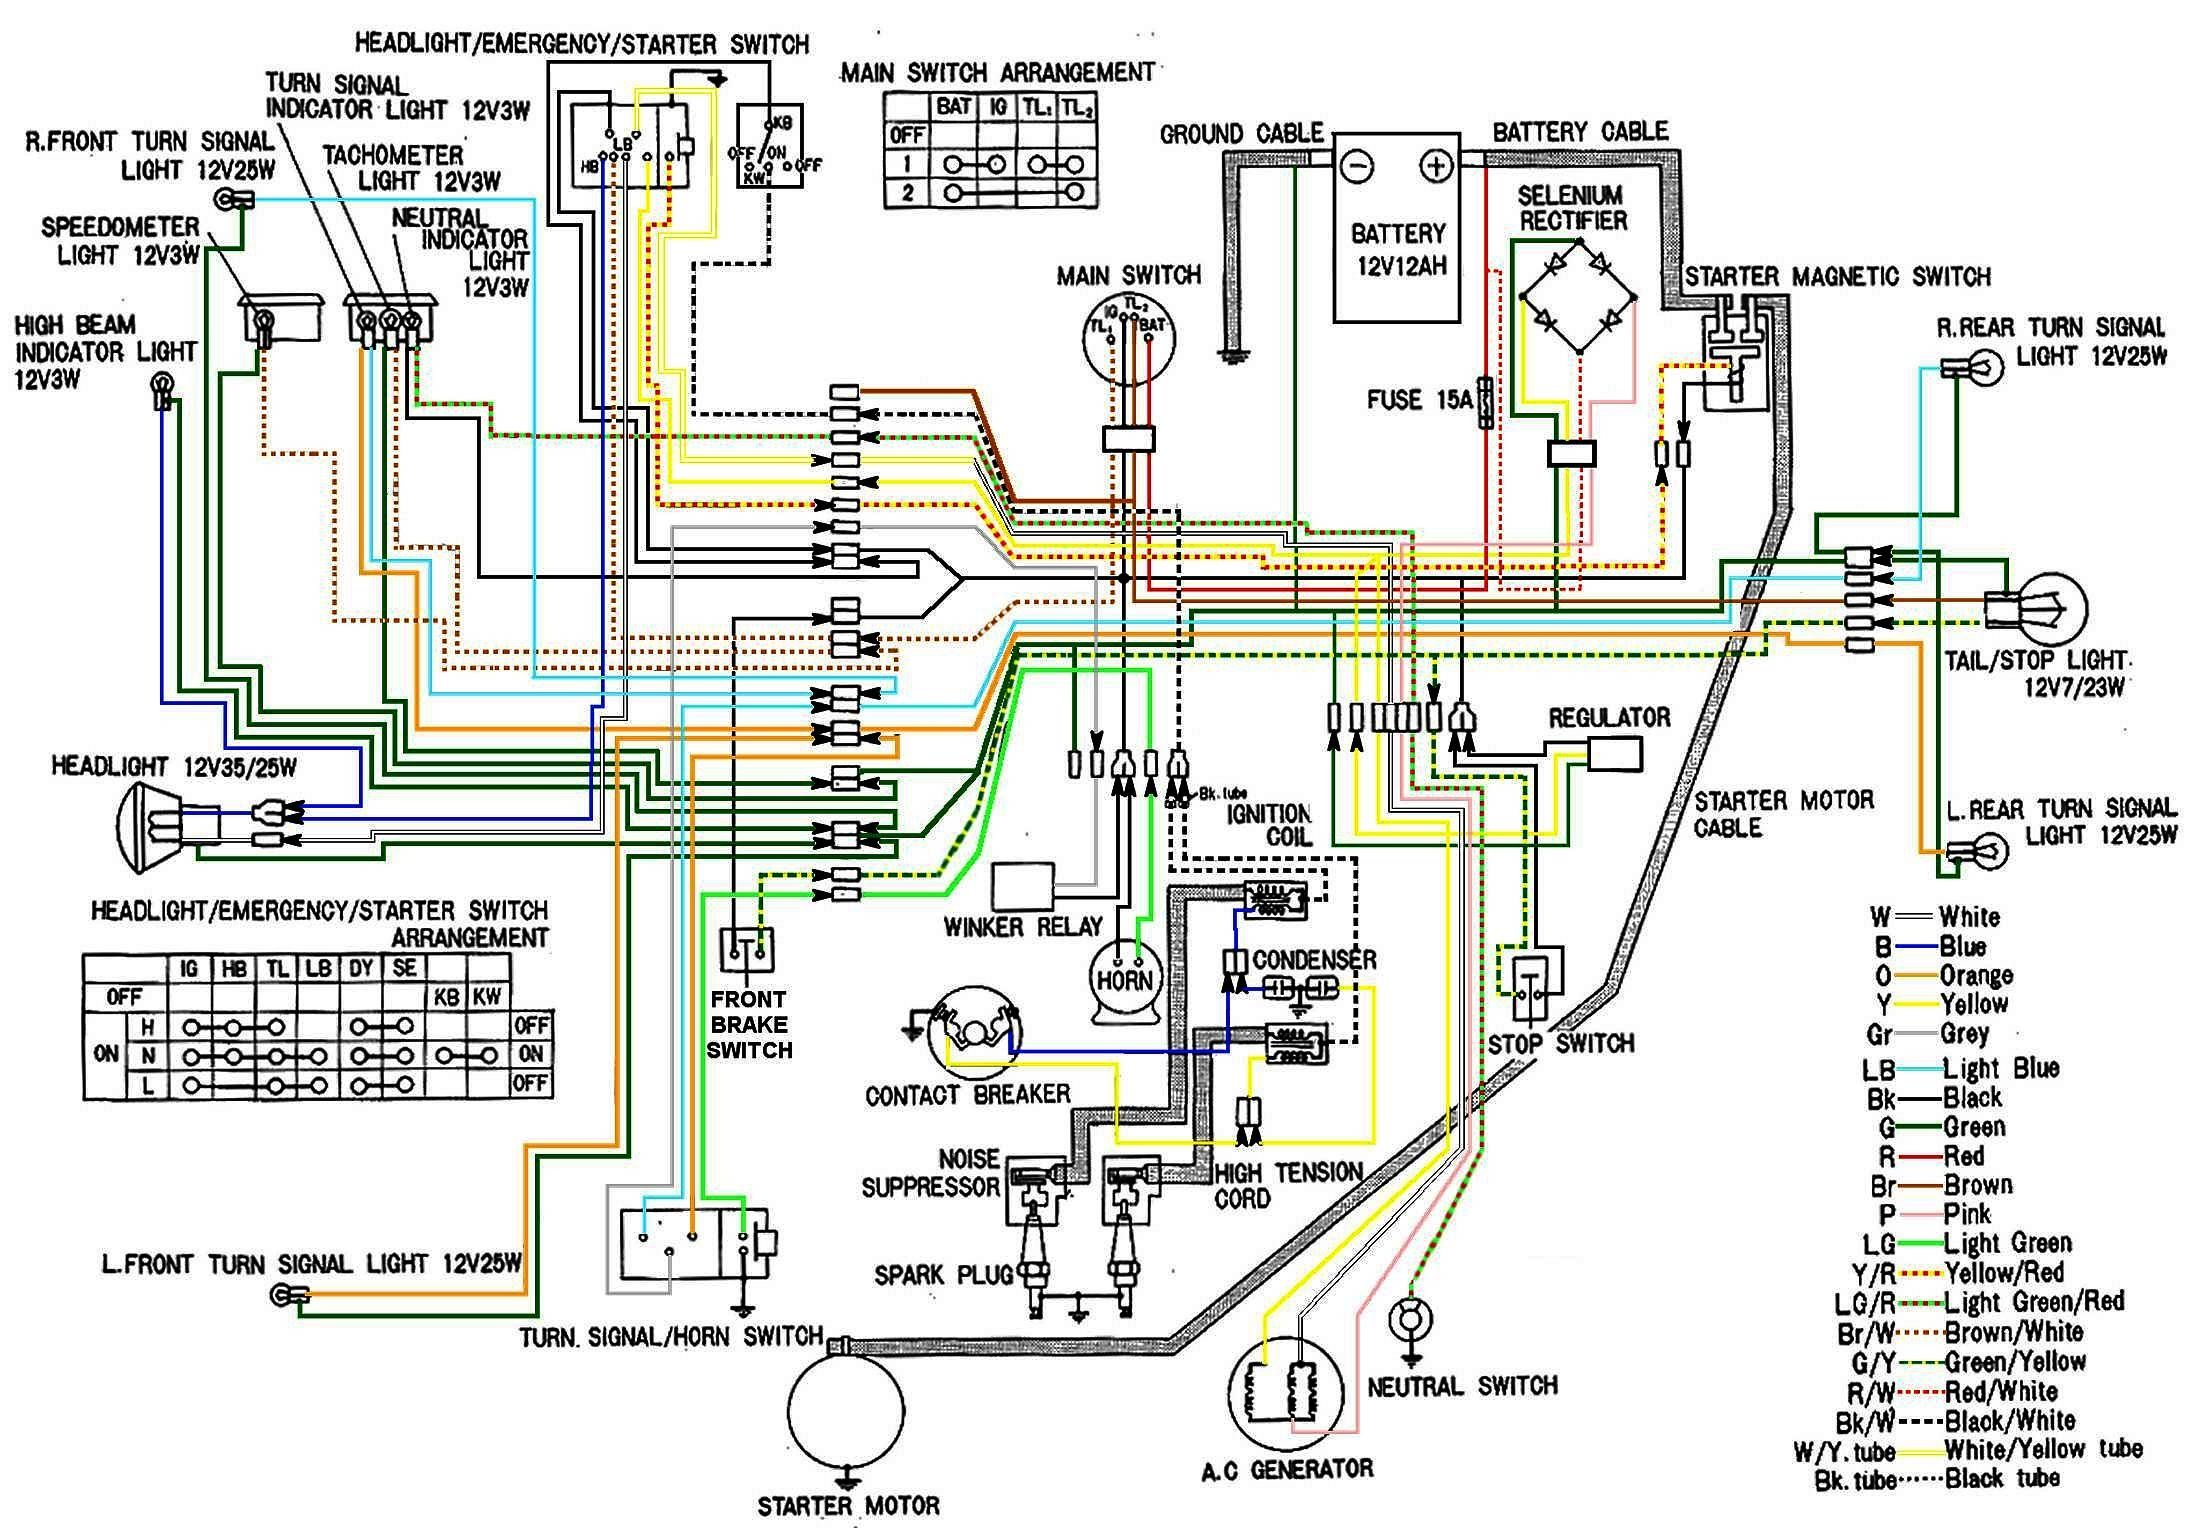 1968 gmc truck wiring diagram trusted wiring diagram 1973 chevy pickup wiring diagram cb wiring diagrams [ 2200 x 1534 Pixel ]